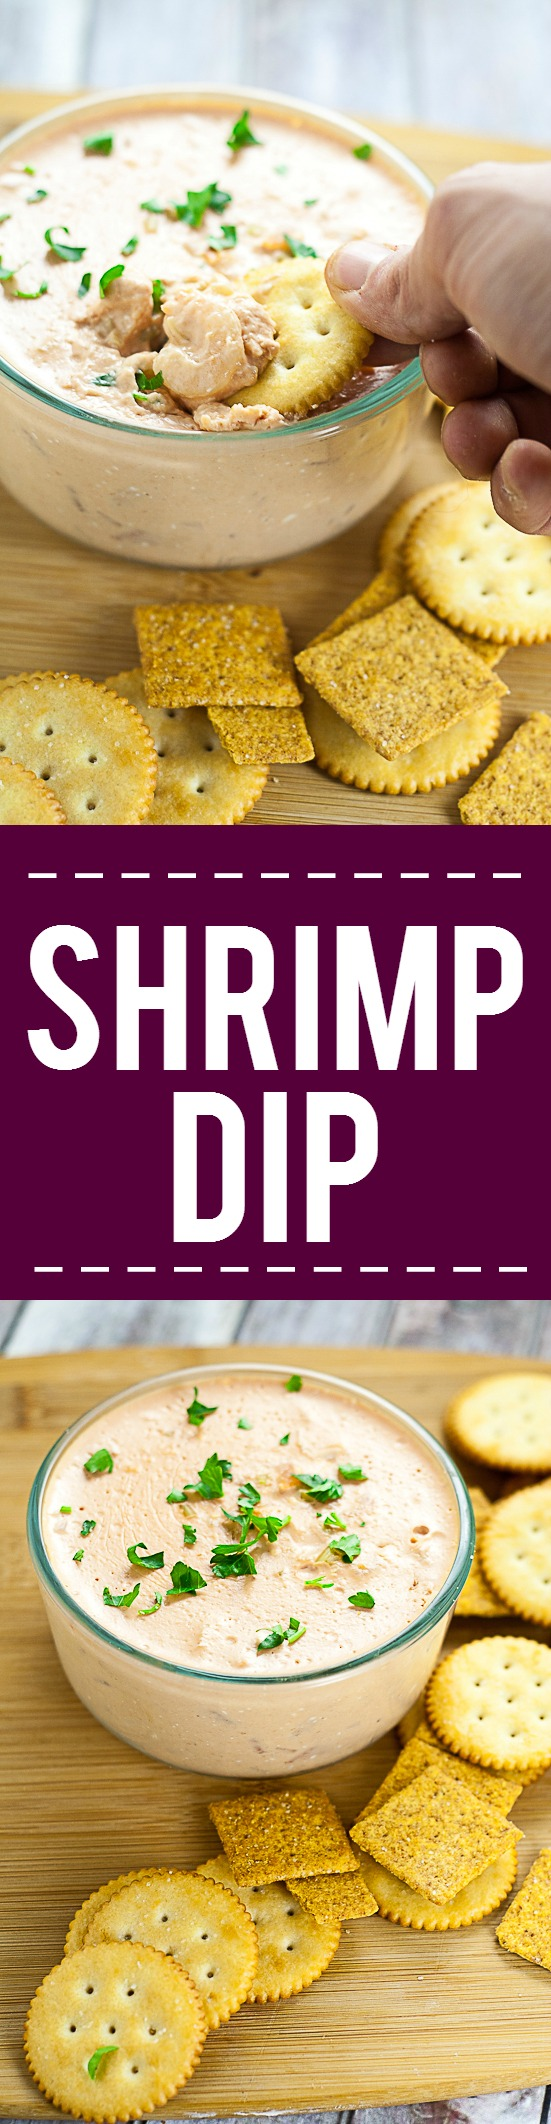 Shrimp Mold Dip Recipe -A vintage but tasty recipe, this Shrimp Mold Dip recipe will be the highlight of the party with a creamy tomato base, salad shrimp, and onion and celery. Classic, simple, and delicious appetizer recipe and easy dip!